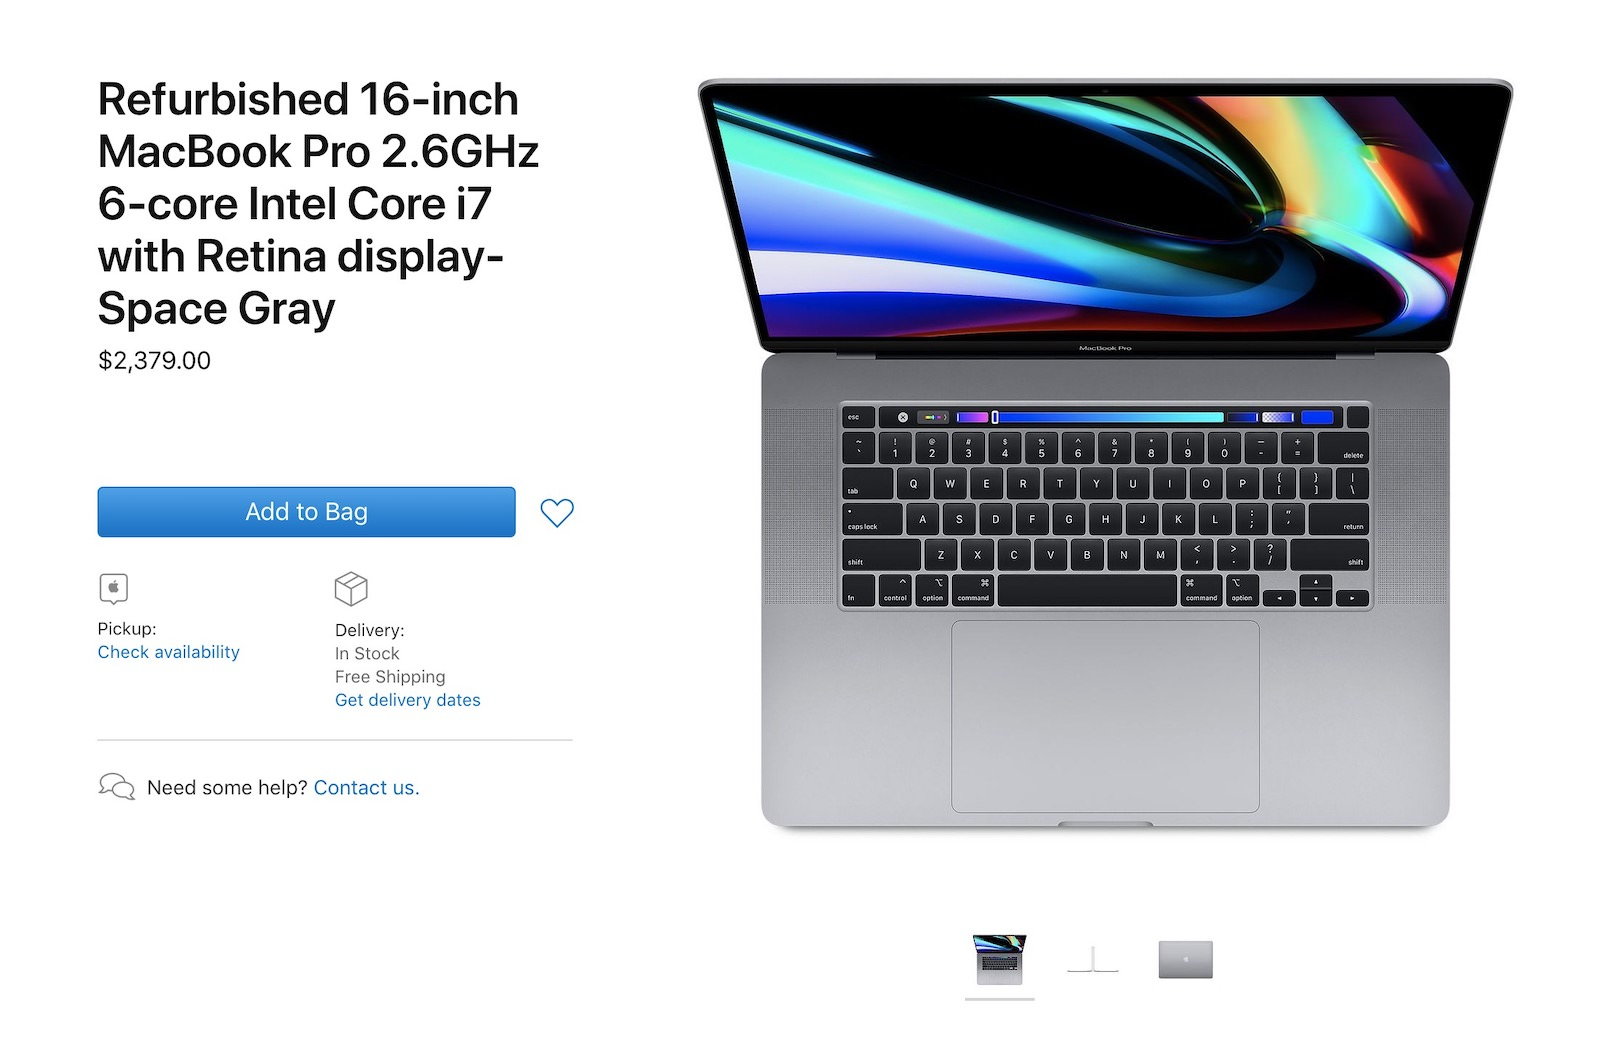 Apple Refurbished macbookpro16inc models